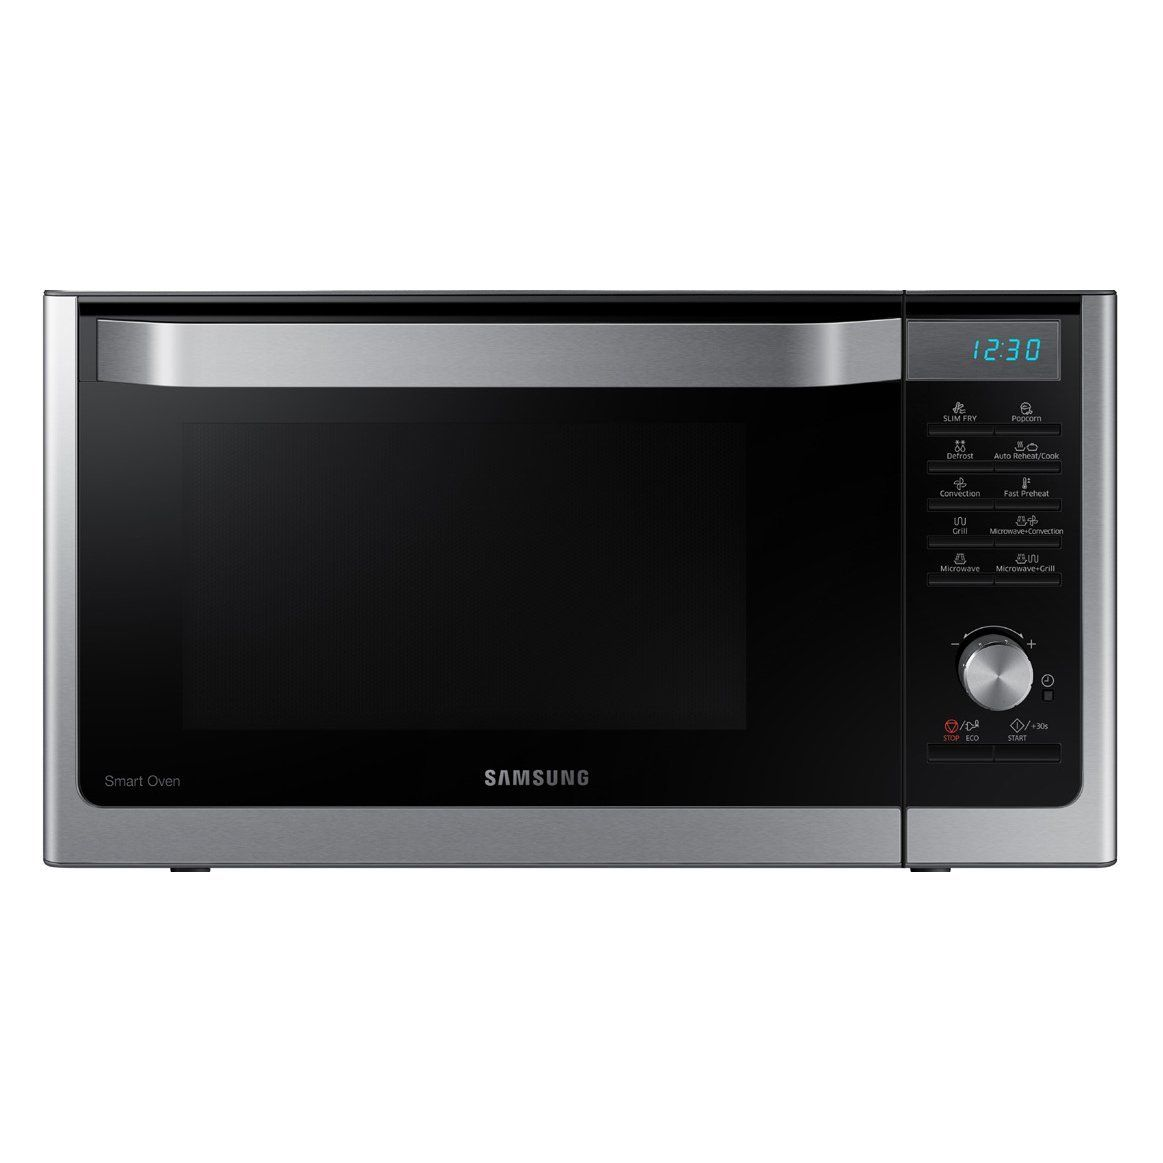 Samsung Mc11h6033ct Countertop Convection Microwave With 1 1 Cu Ft Capacity Slim Fry Te Countertop Microwave